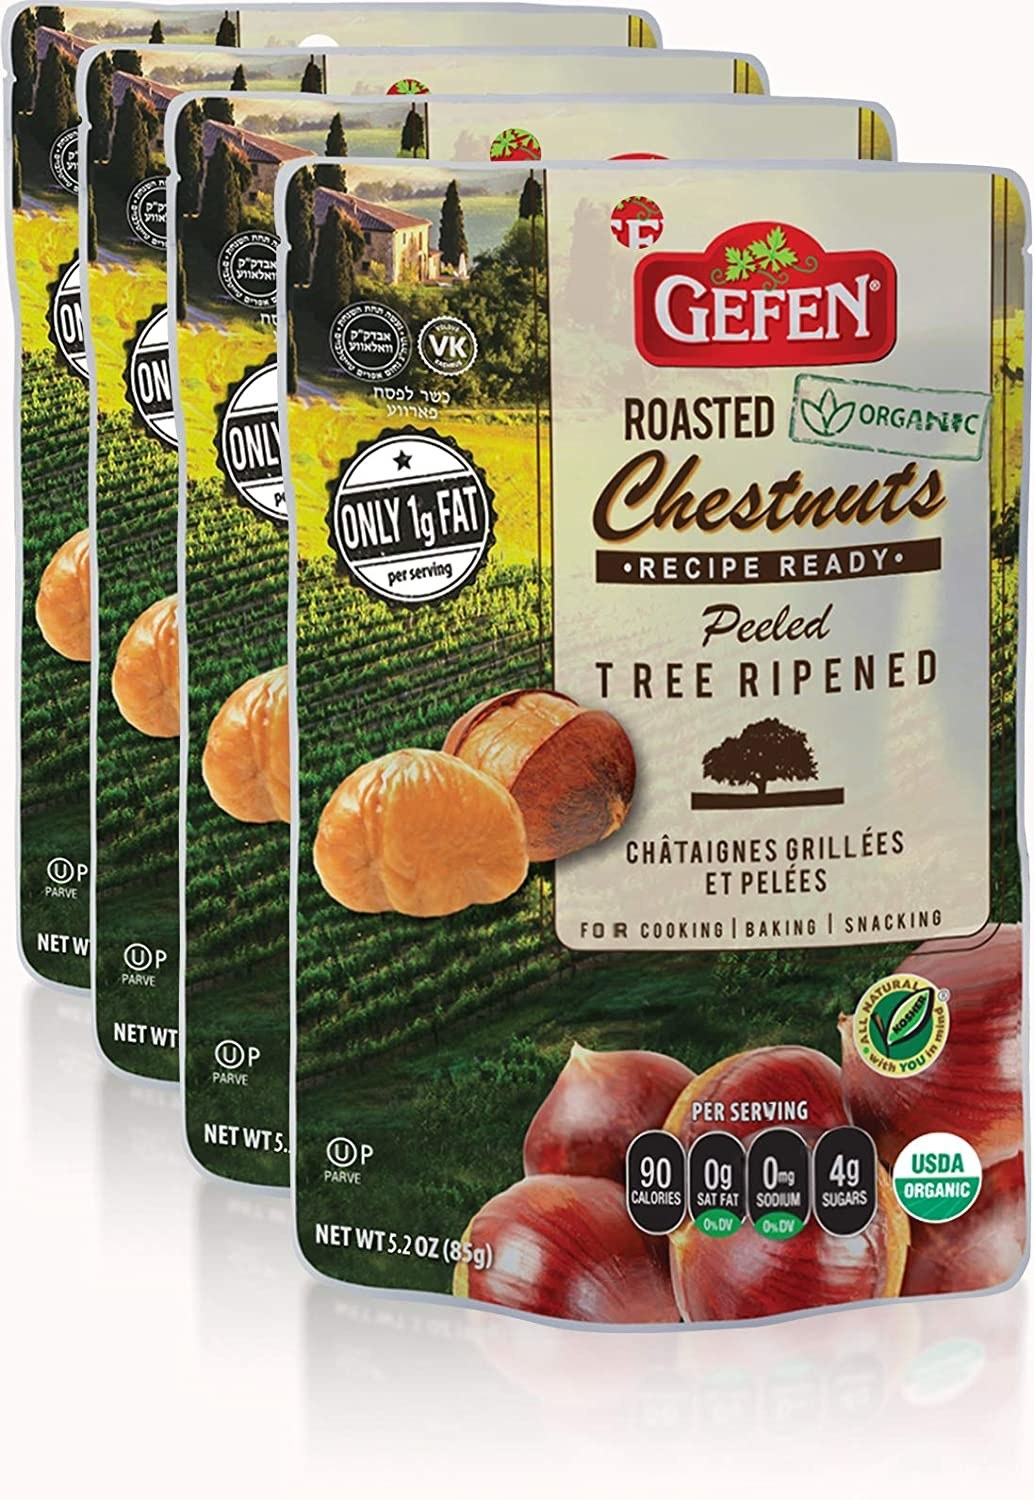 The chestnuts in their packaging